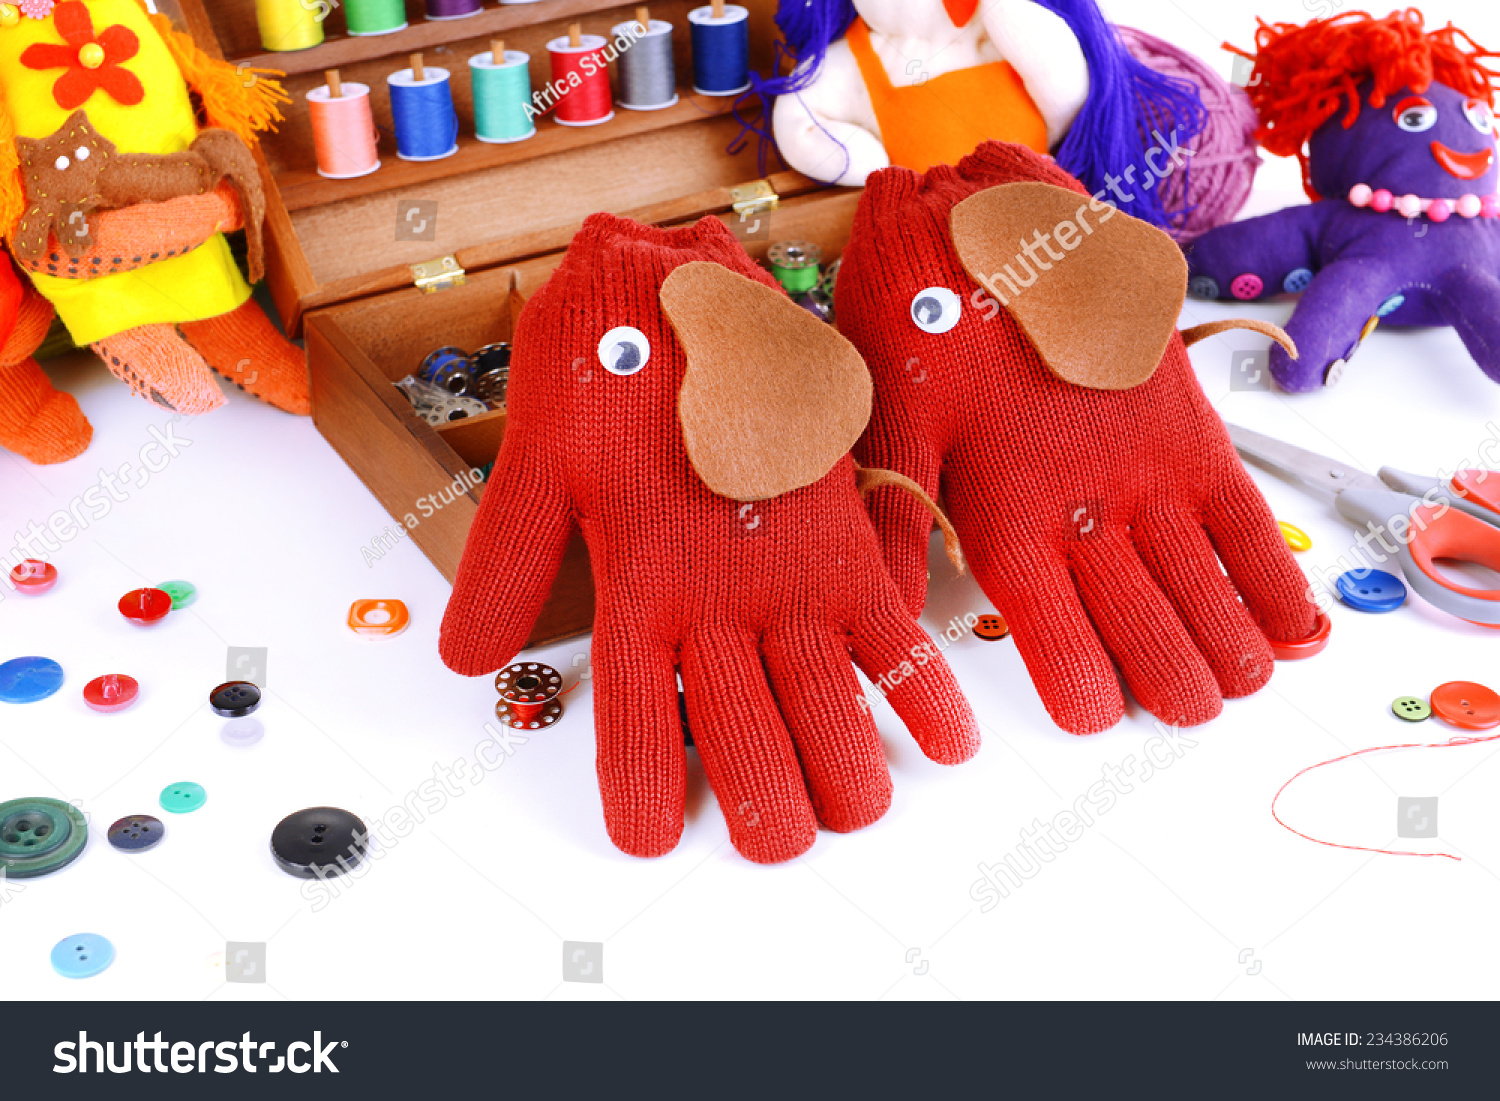 Toys From Africa : Making handmade toys gloves on white stock photo royalty free